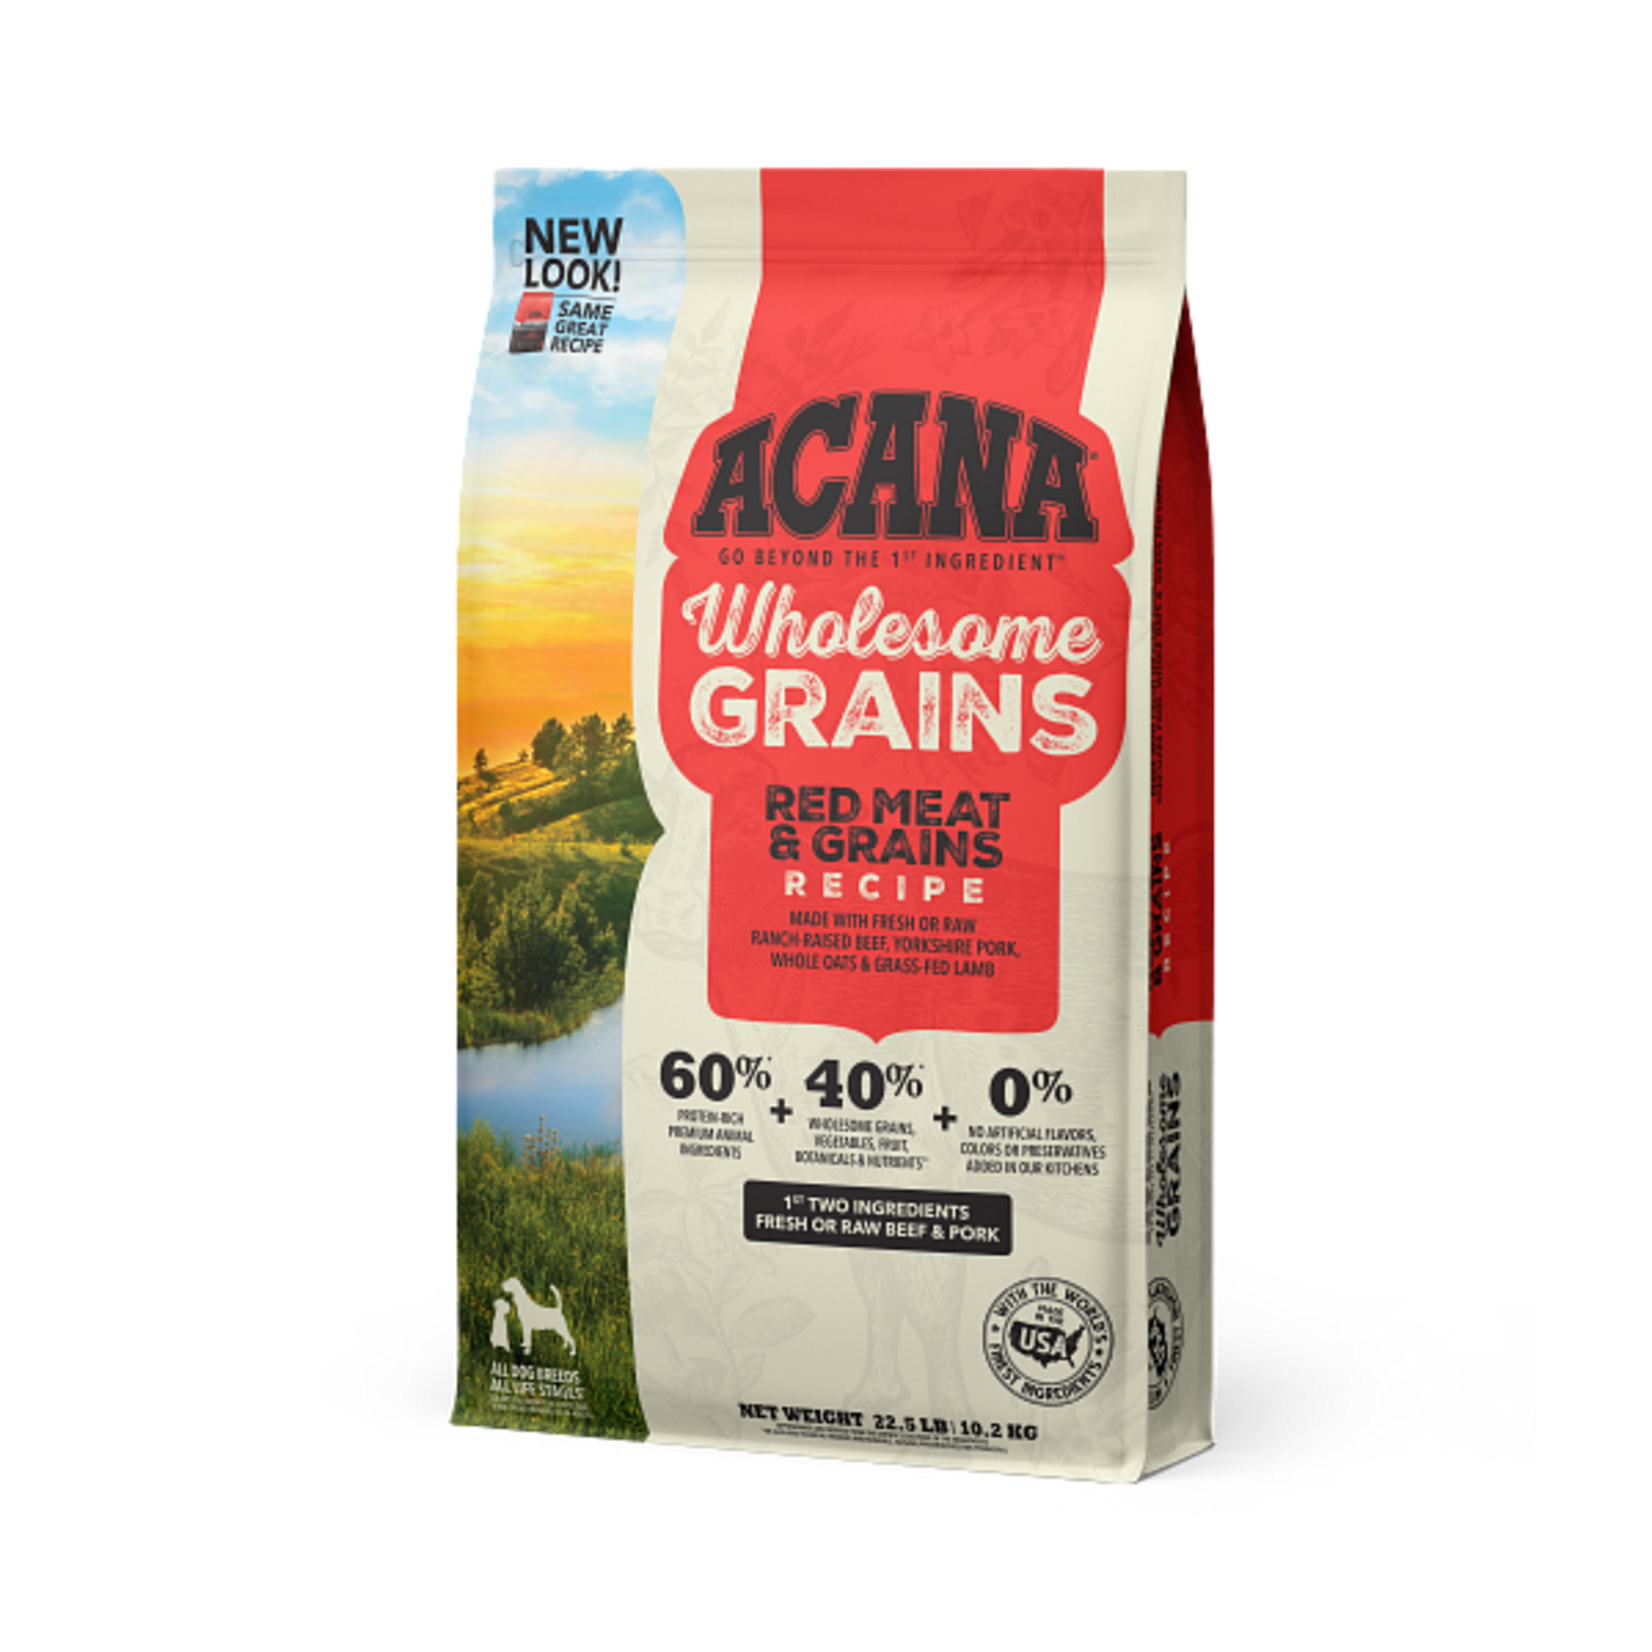 Champion Pet Foods Acana Dog Wholesome Grains Red Meats 22.5#